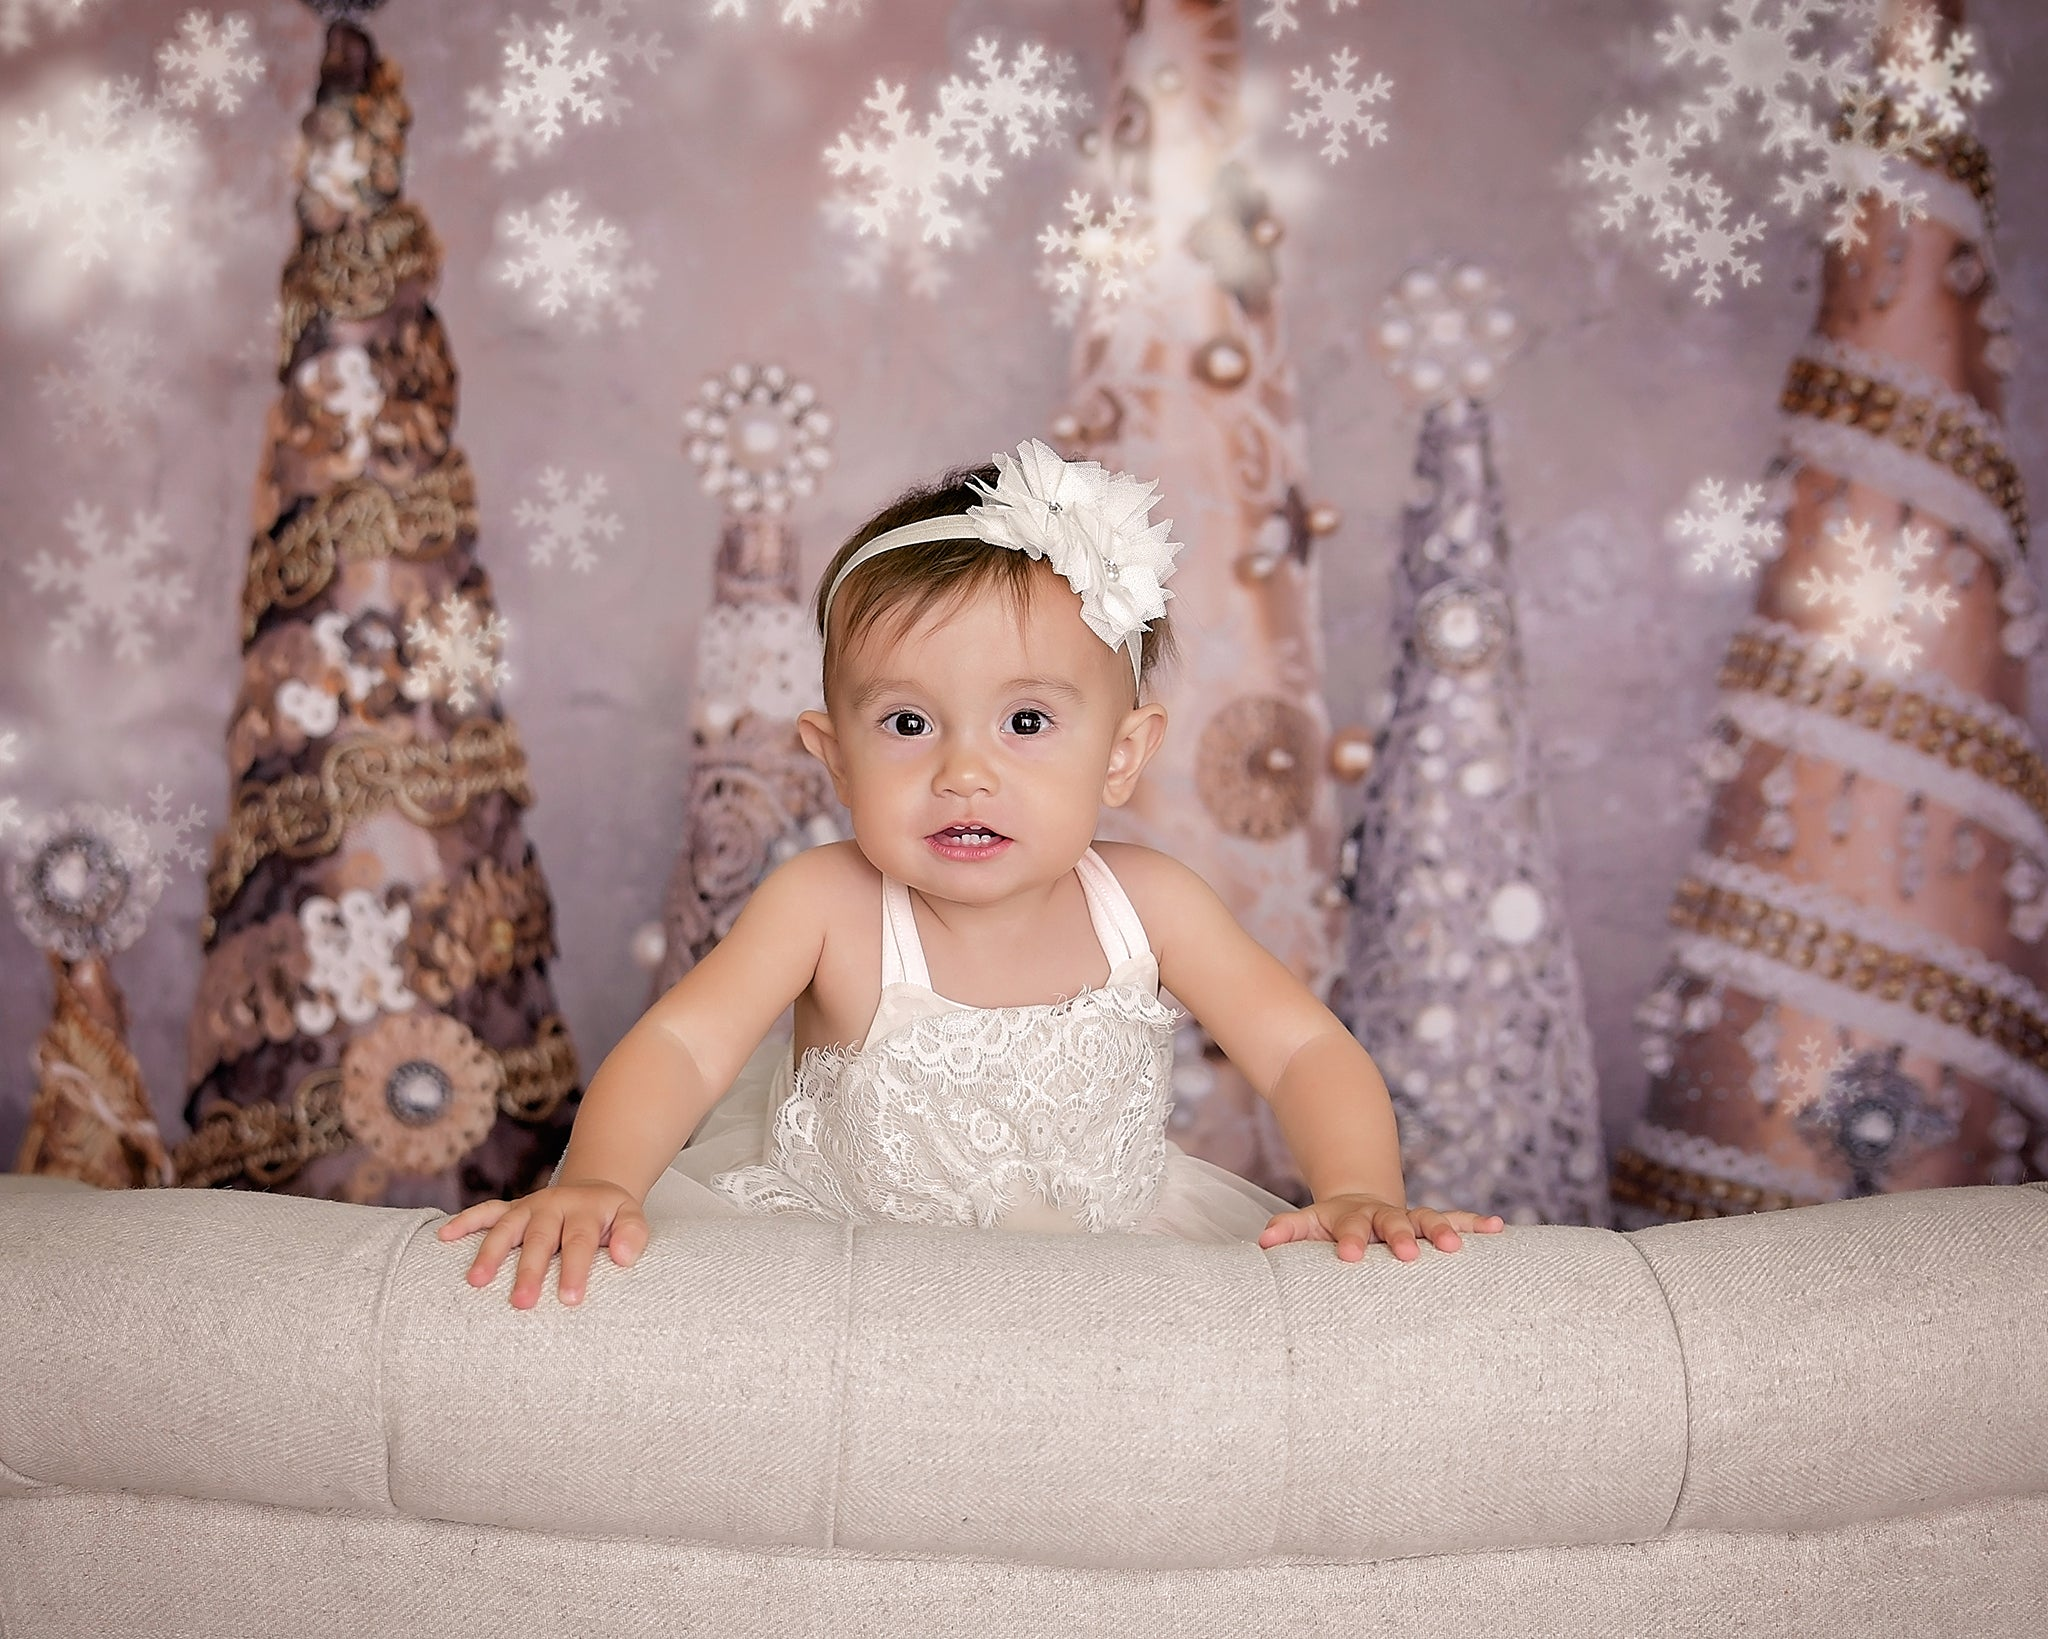 Photography Mini for Christmas: Ideas to Make Extra Cash